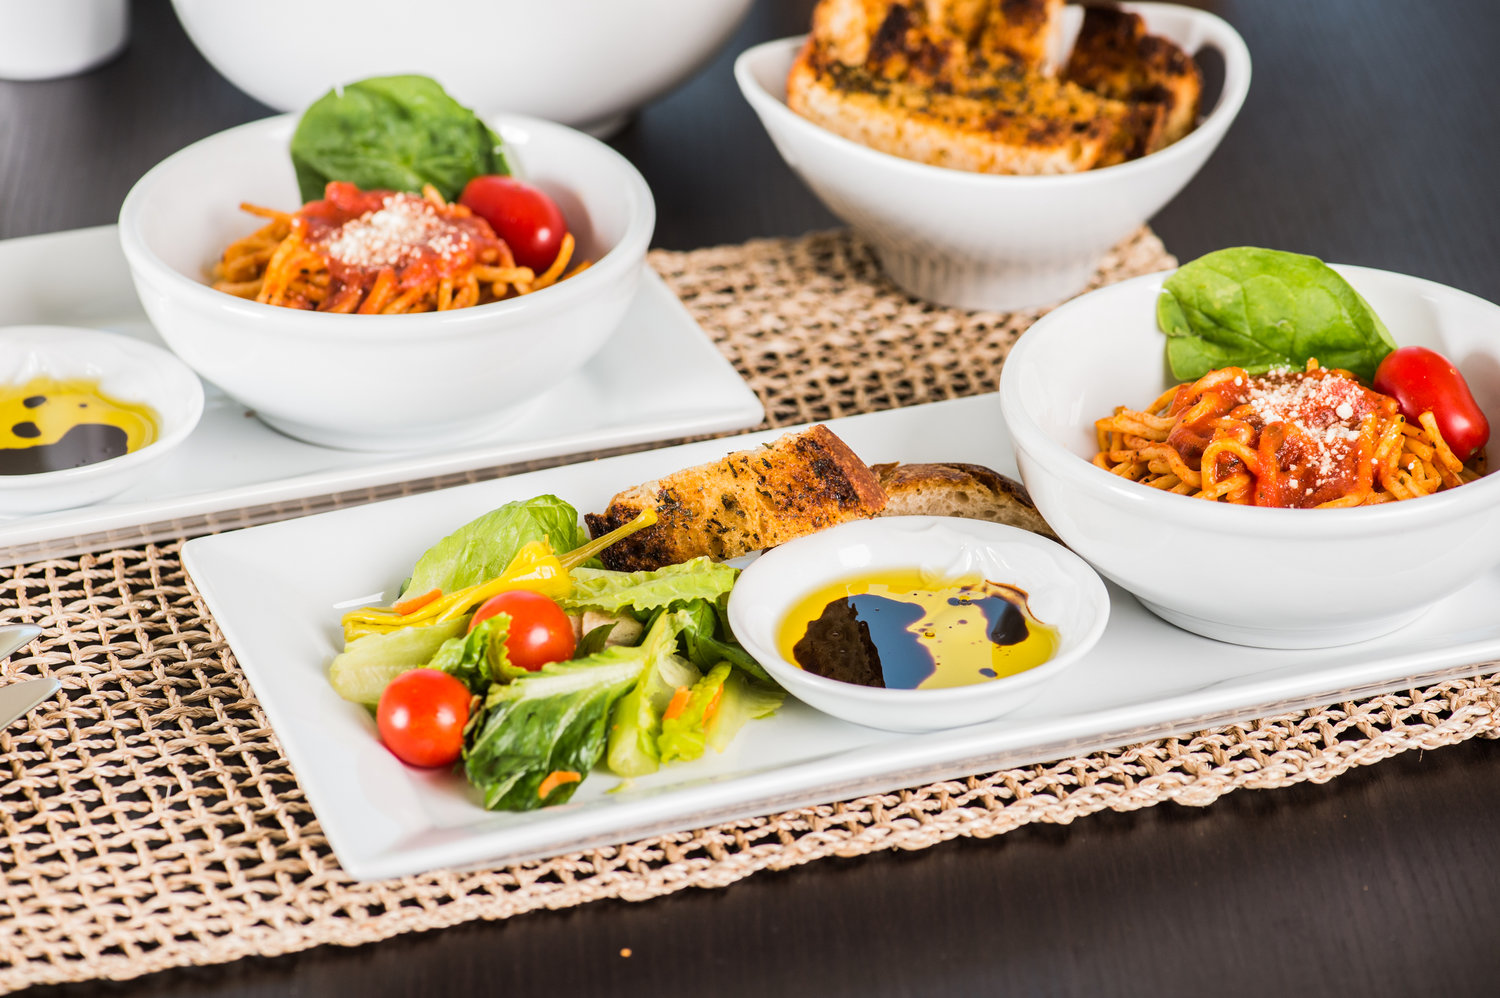 bia cordon bleu - based in california bia cordon bleu has been crafting superb stonewareporcelain dinnerware and bakeware for  years from contemporary patternsto